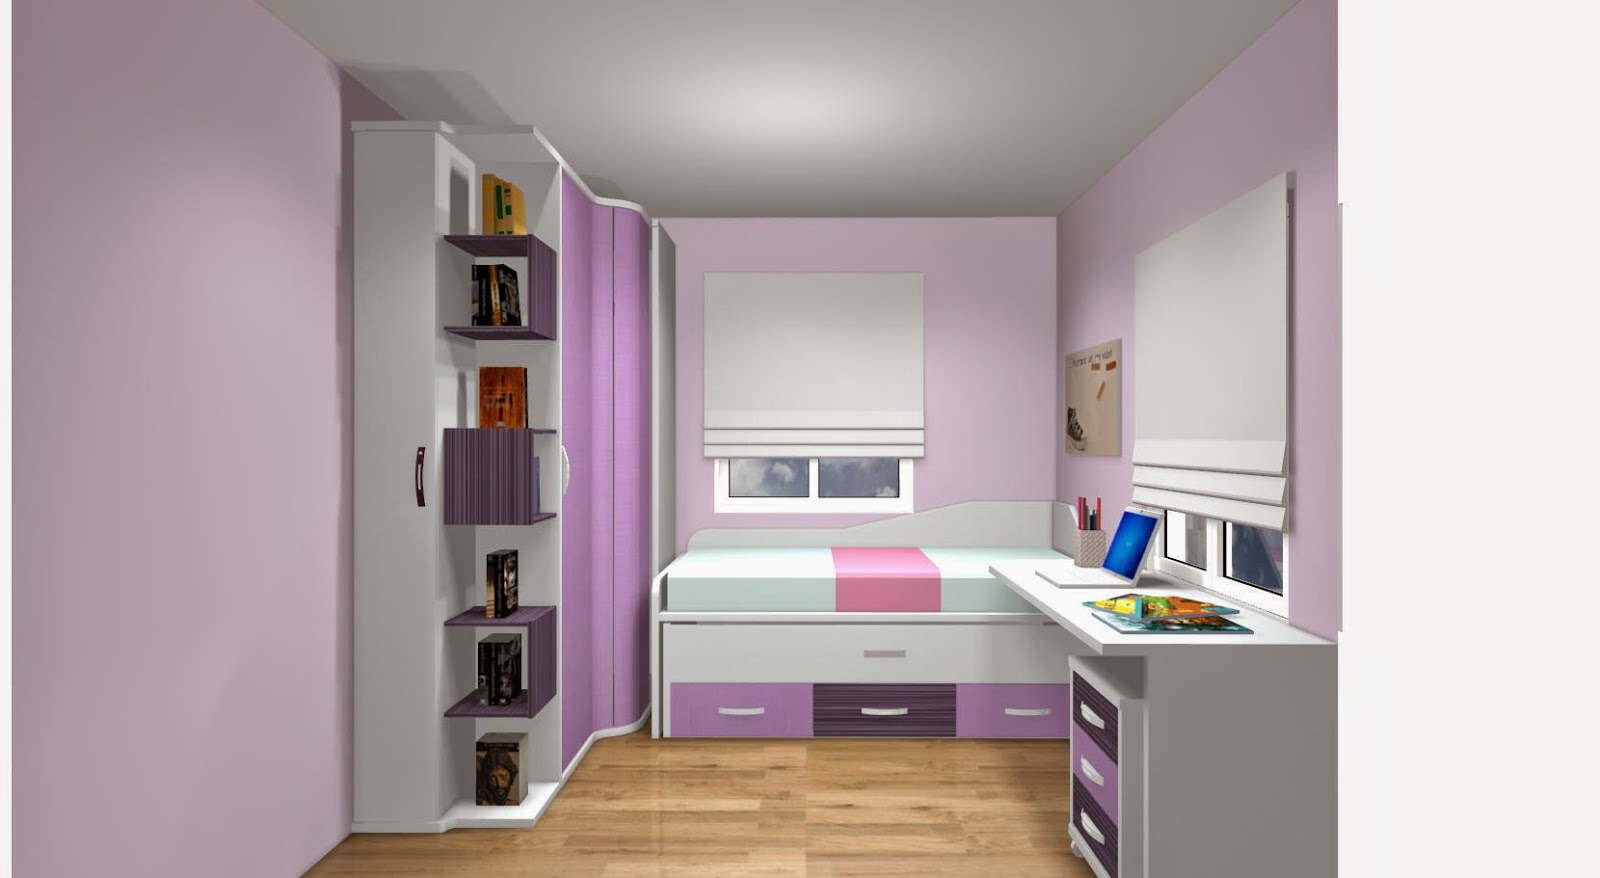 Ideas Para Decorar Una Habitacin Juvenil Mesa Interesting  ~ Como Decorar Una Habitacion Juvenil Pequeña